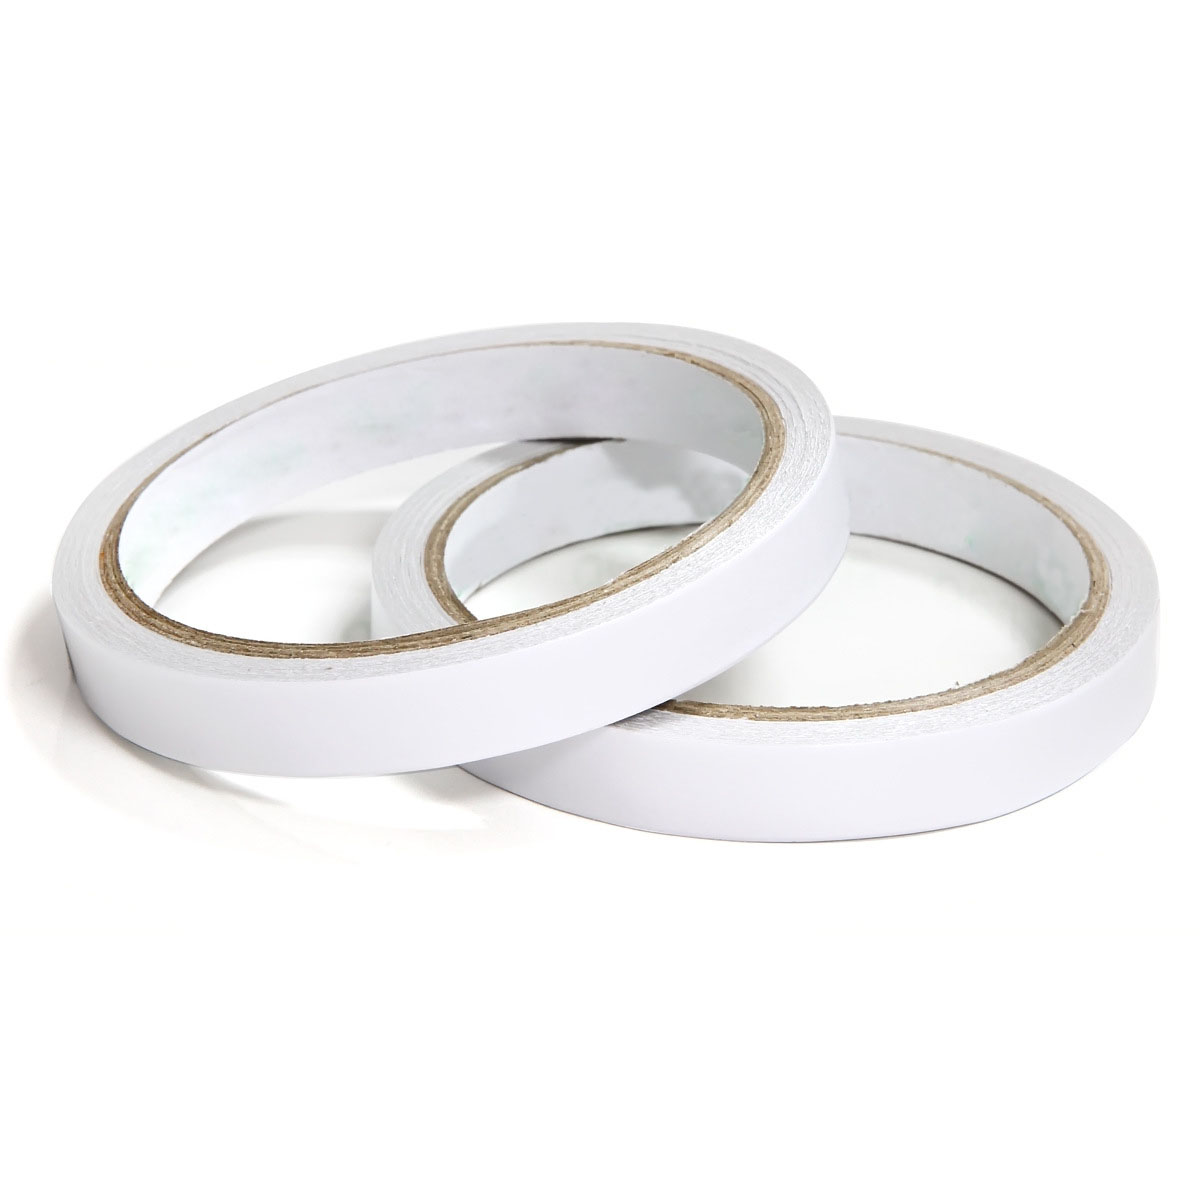 20M Length Double Sided Tape Mounting Tape Strong Adhesive Width 10mm 15mm 20mm 25mm 30mm